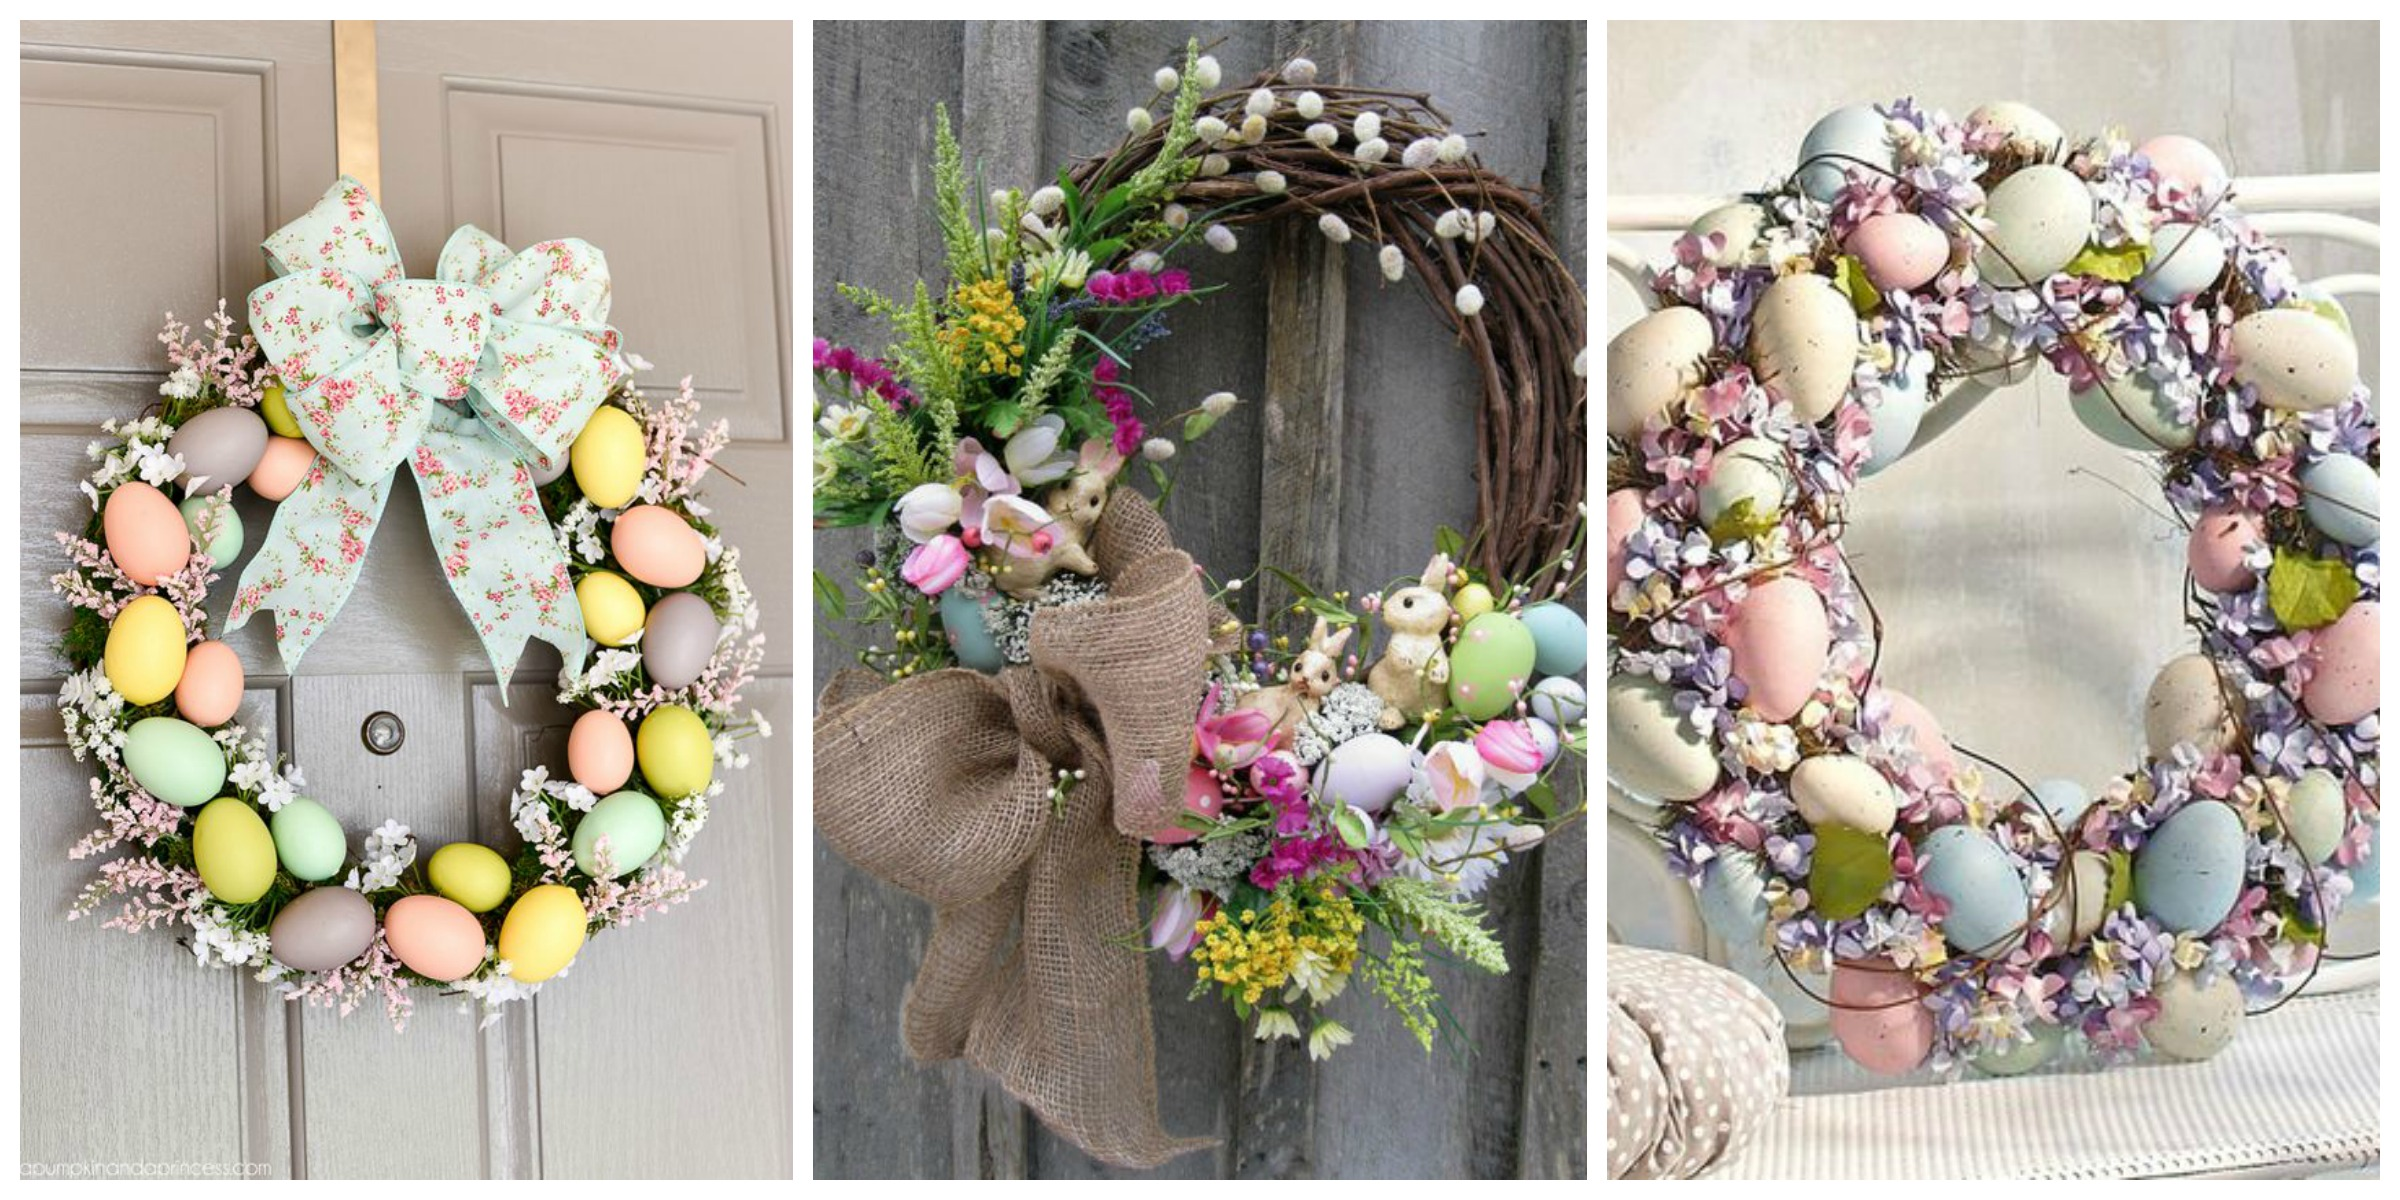 Decorating Your Home For Easter Champagne And Petals